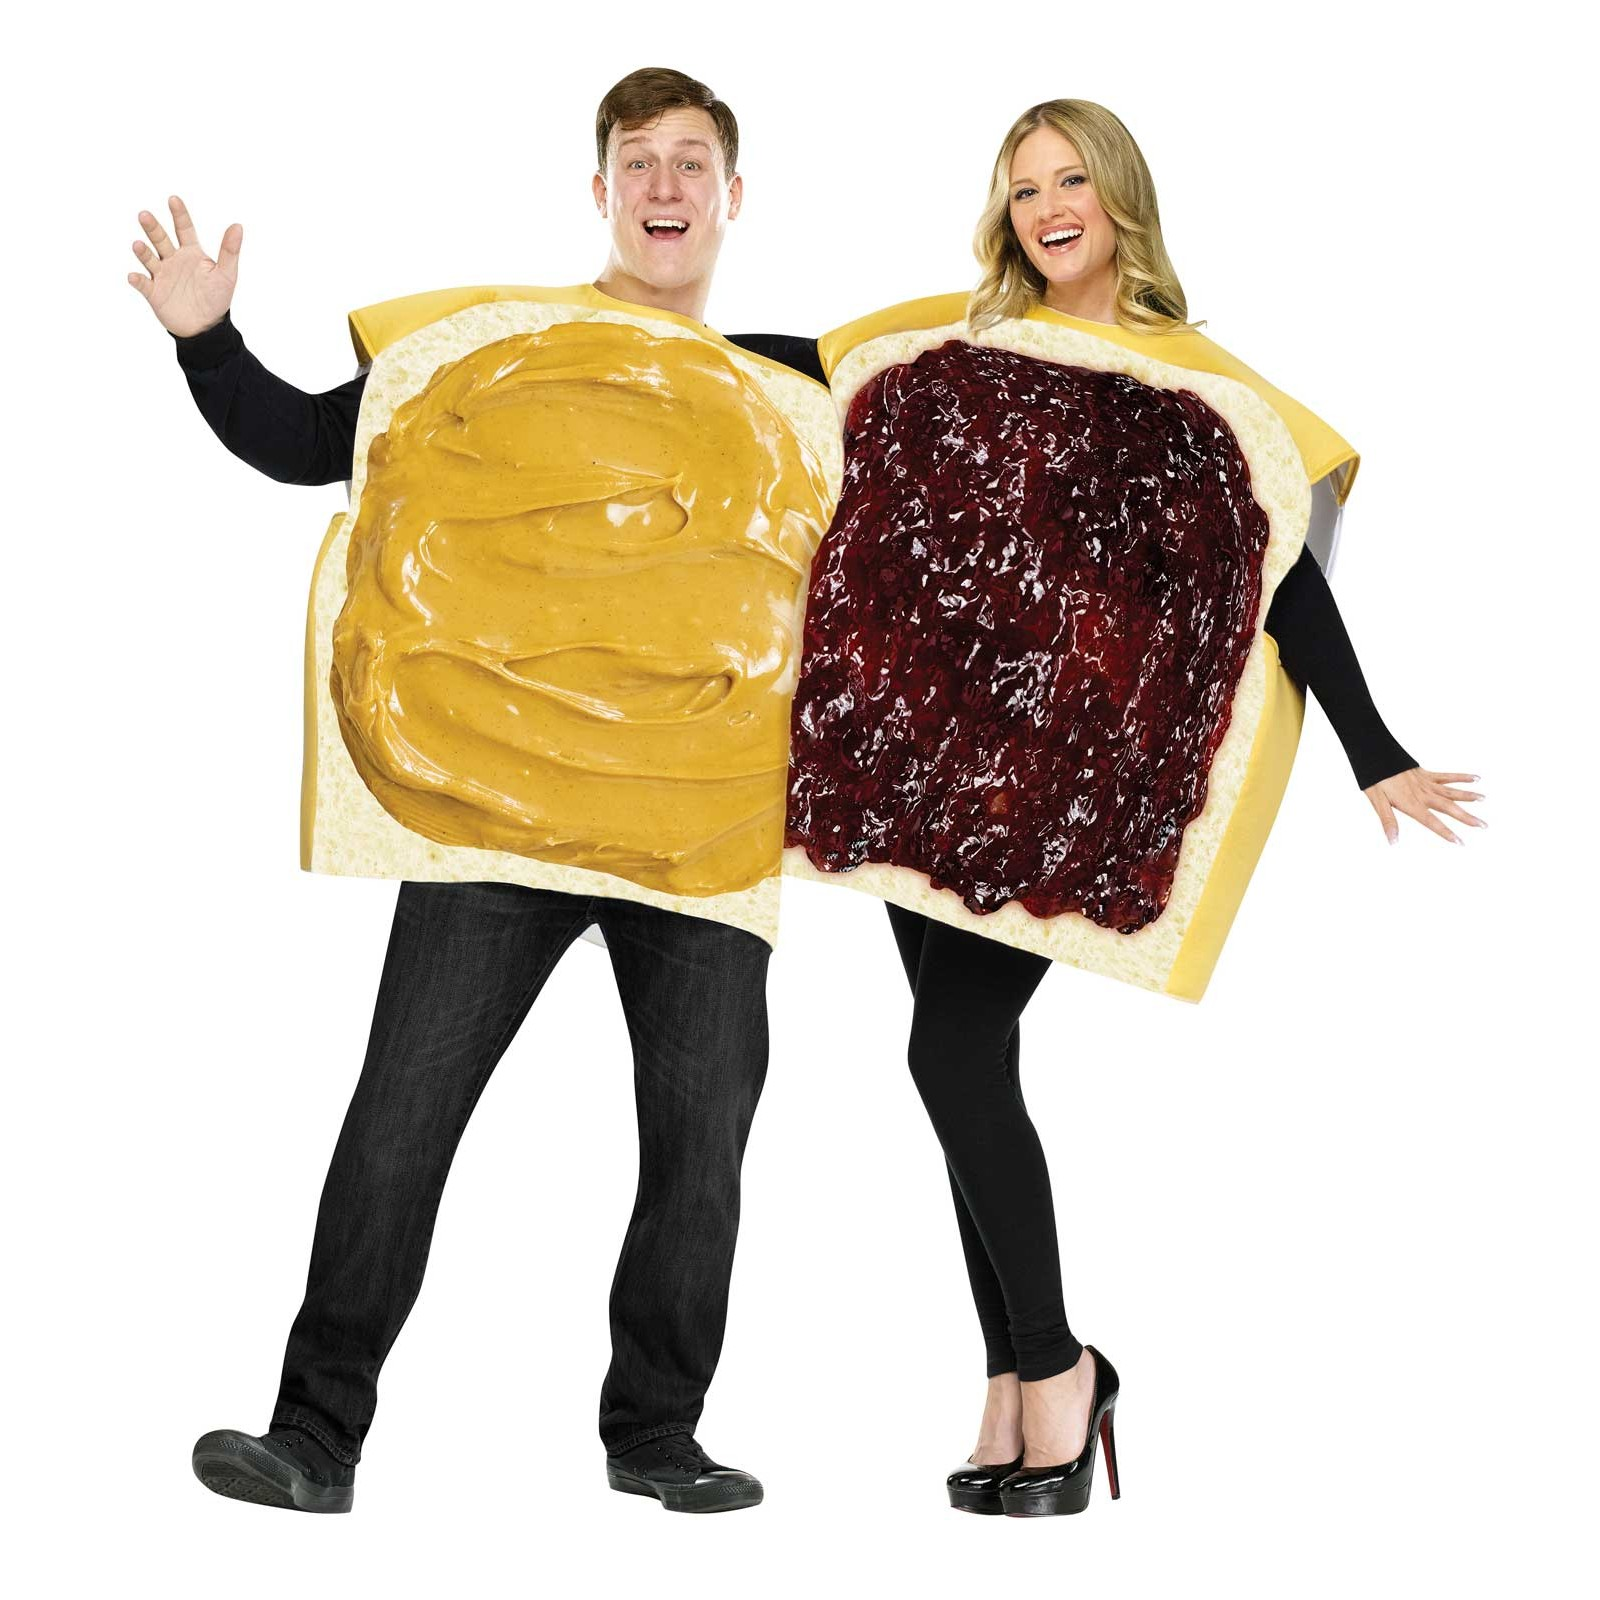 10 funny halloween costumes ideas for couples. Black Bedroom Furniture Sets. Home Design Ideas